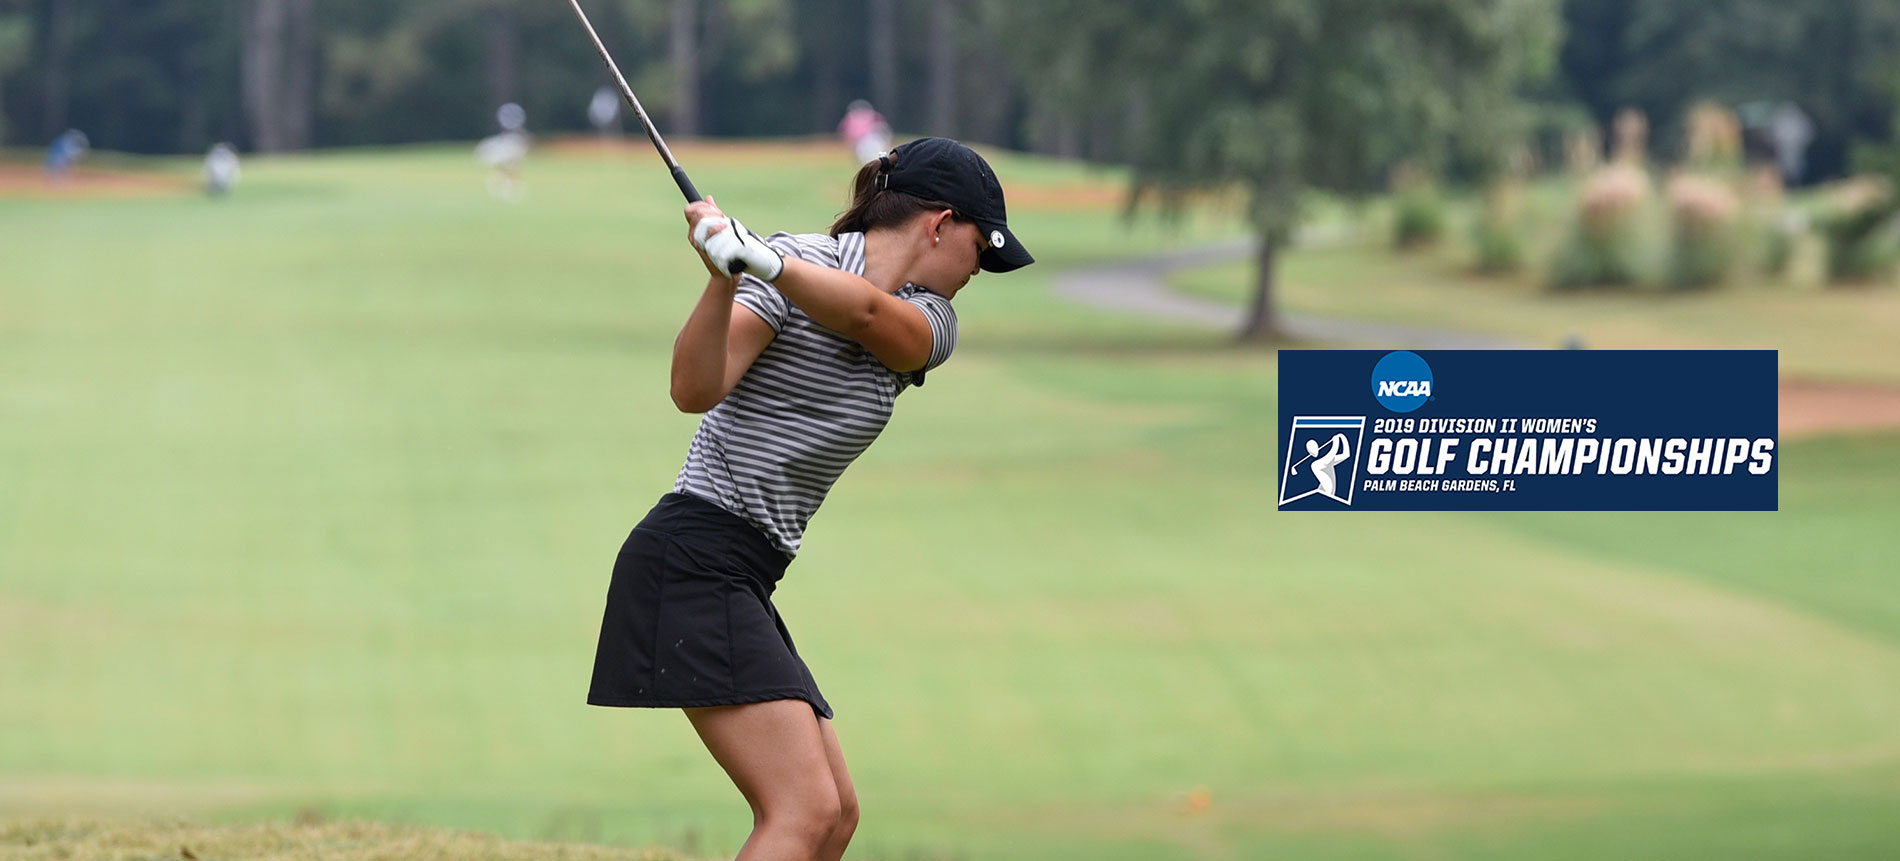 Hall Tied for 57th Place Following Opening Round of NCAA Women's Golf Championships